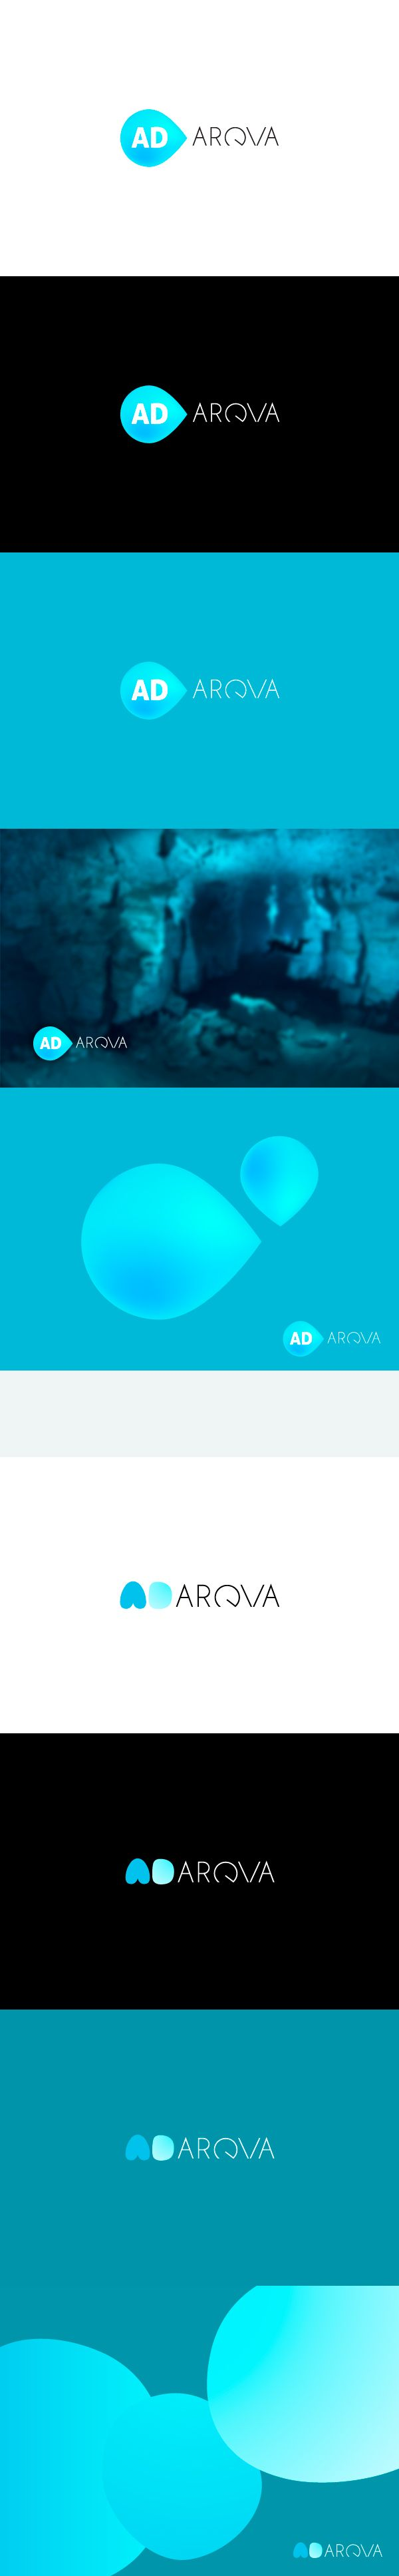 AdArqua on Behance